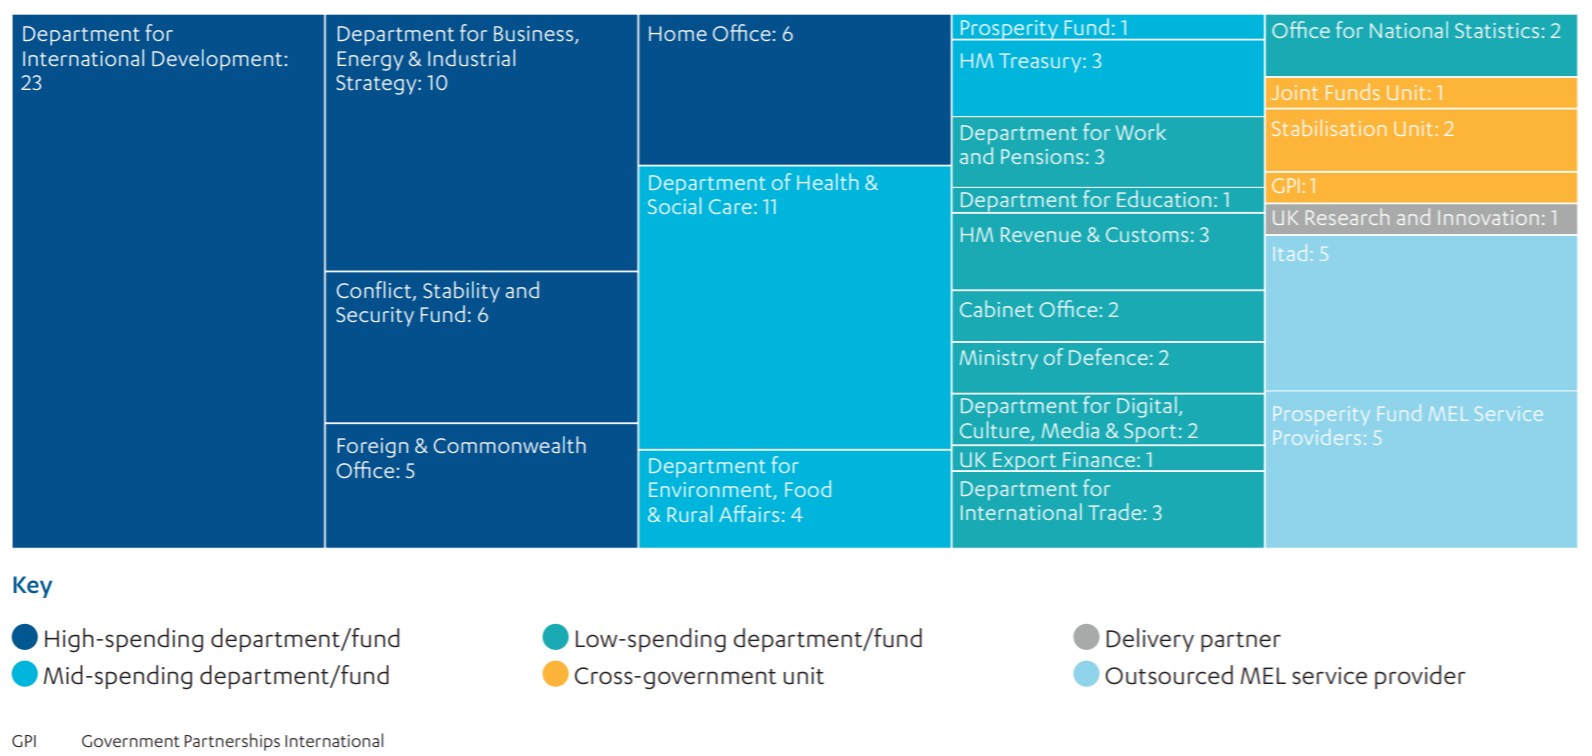 Stakeholders interviewed for this review : 103 people across 18 government departments and funds: